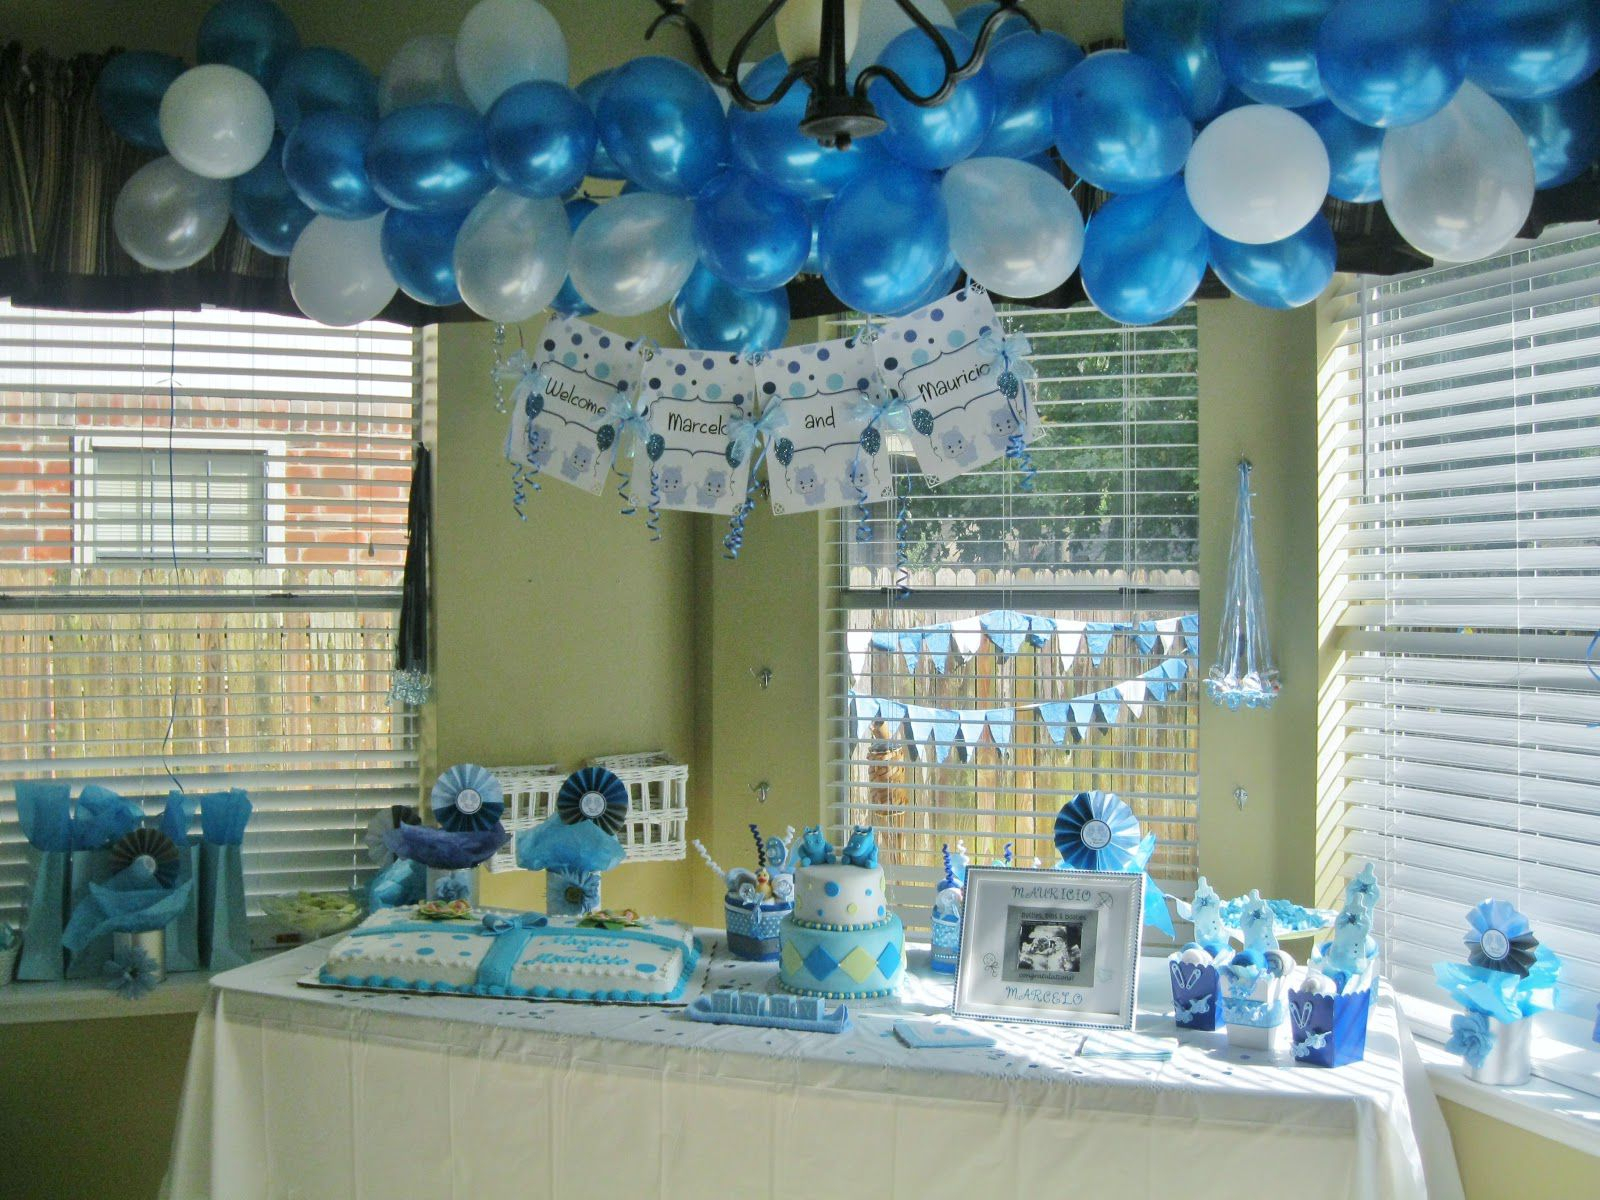 10 Beautiful Blue And White Baby Shower Ideas attractive blue baby shower tables decorations in the corner of the